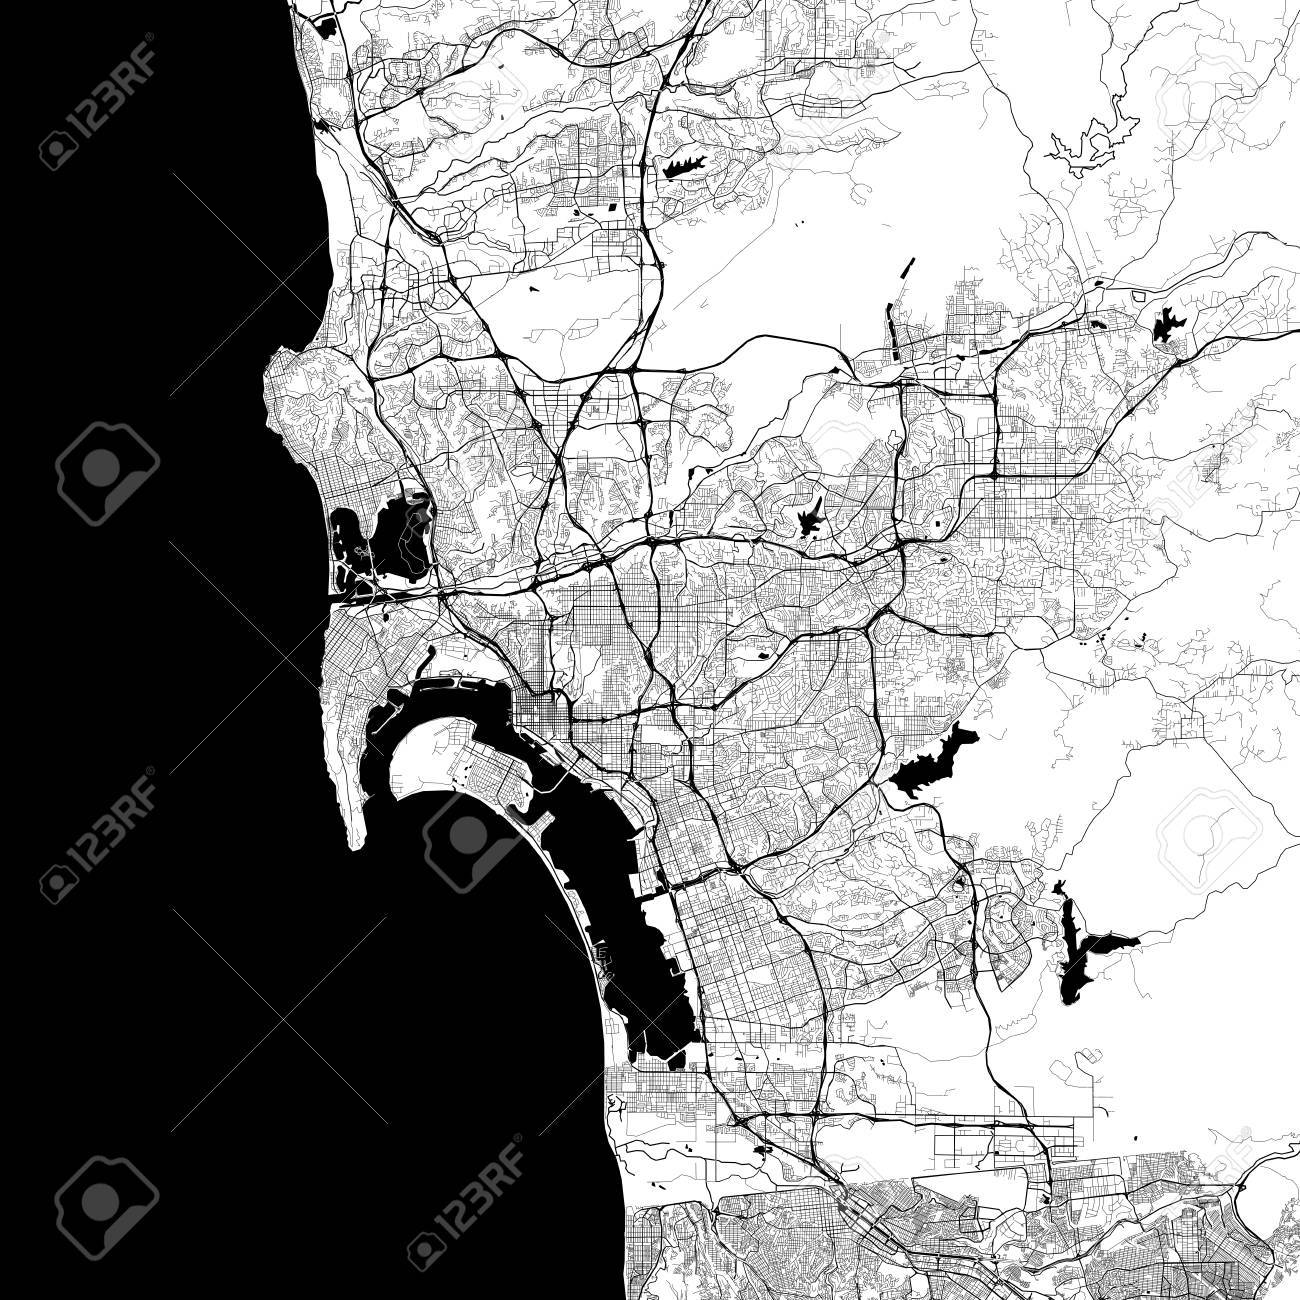 San Diego Monochrome Vector Map Very Large And Detailed Outline